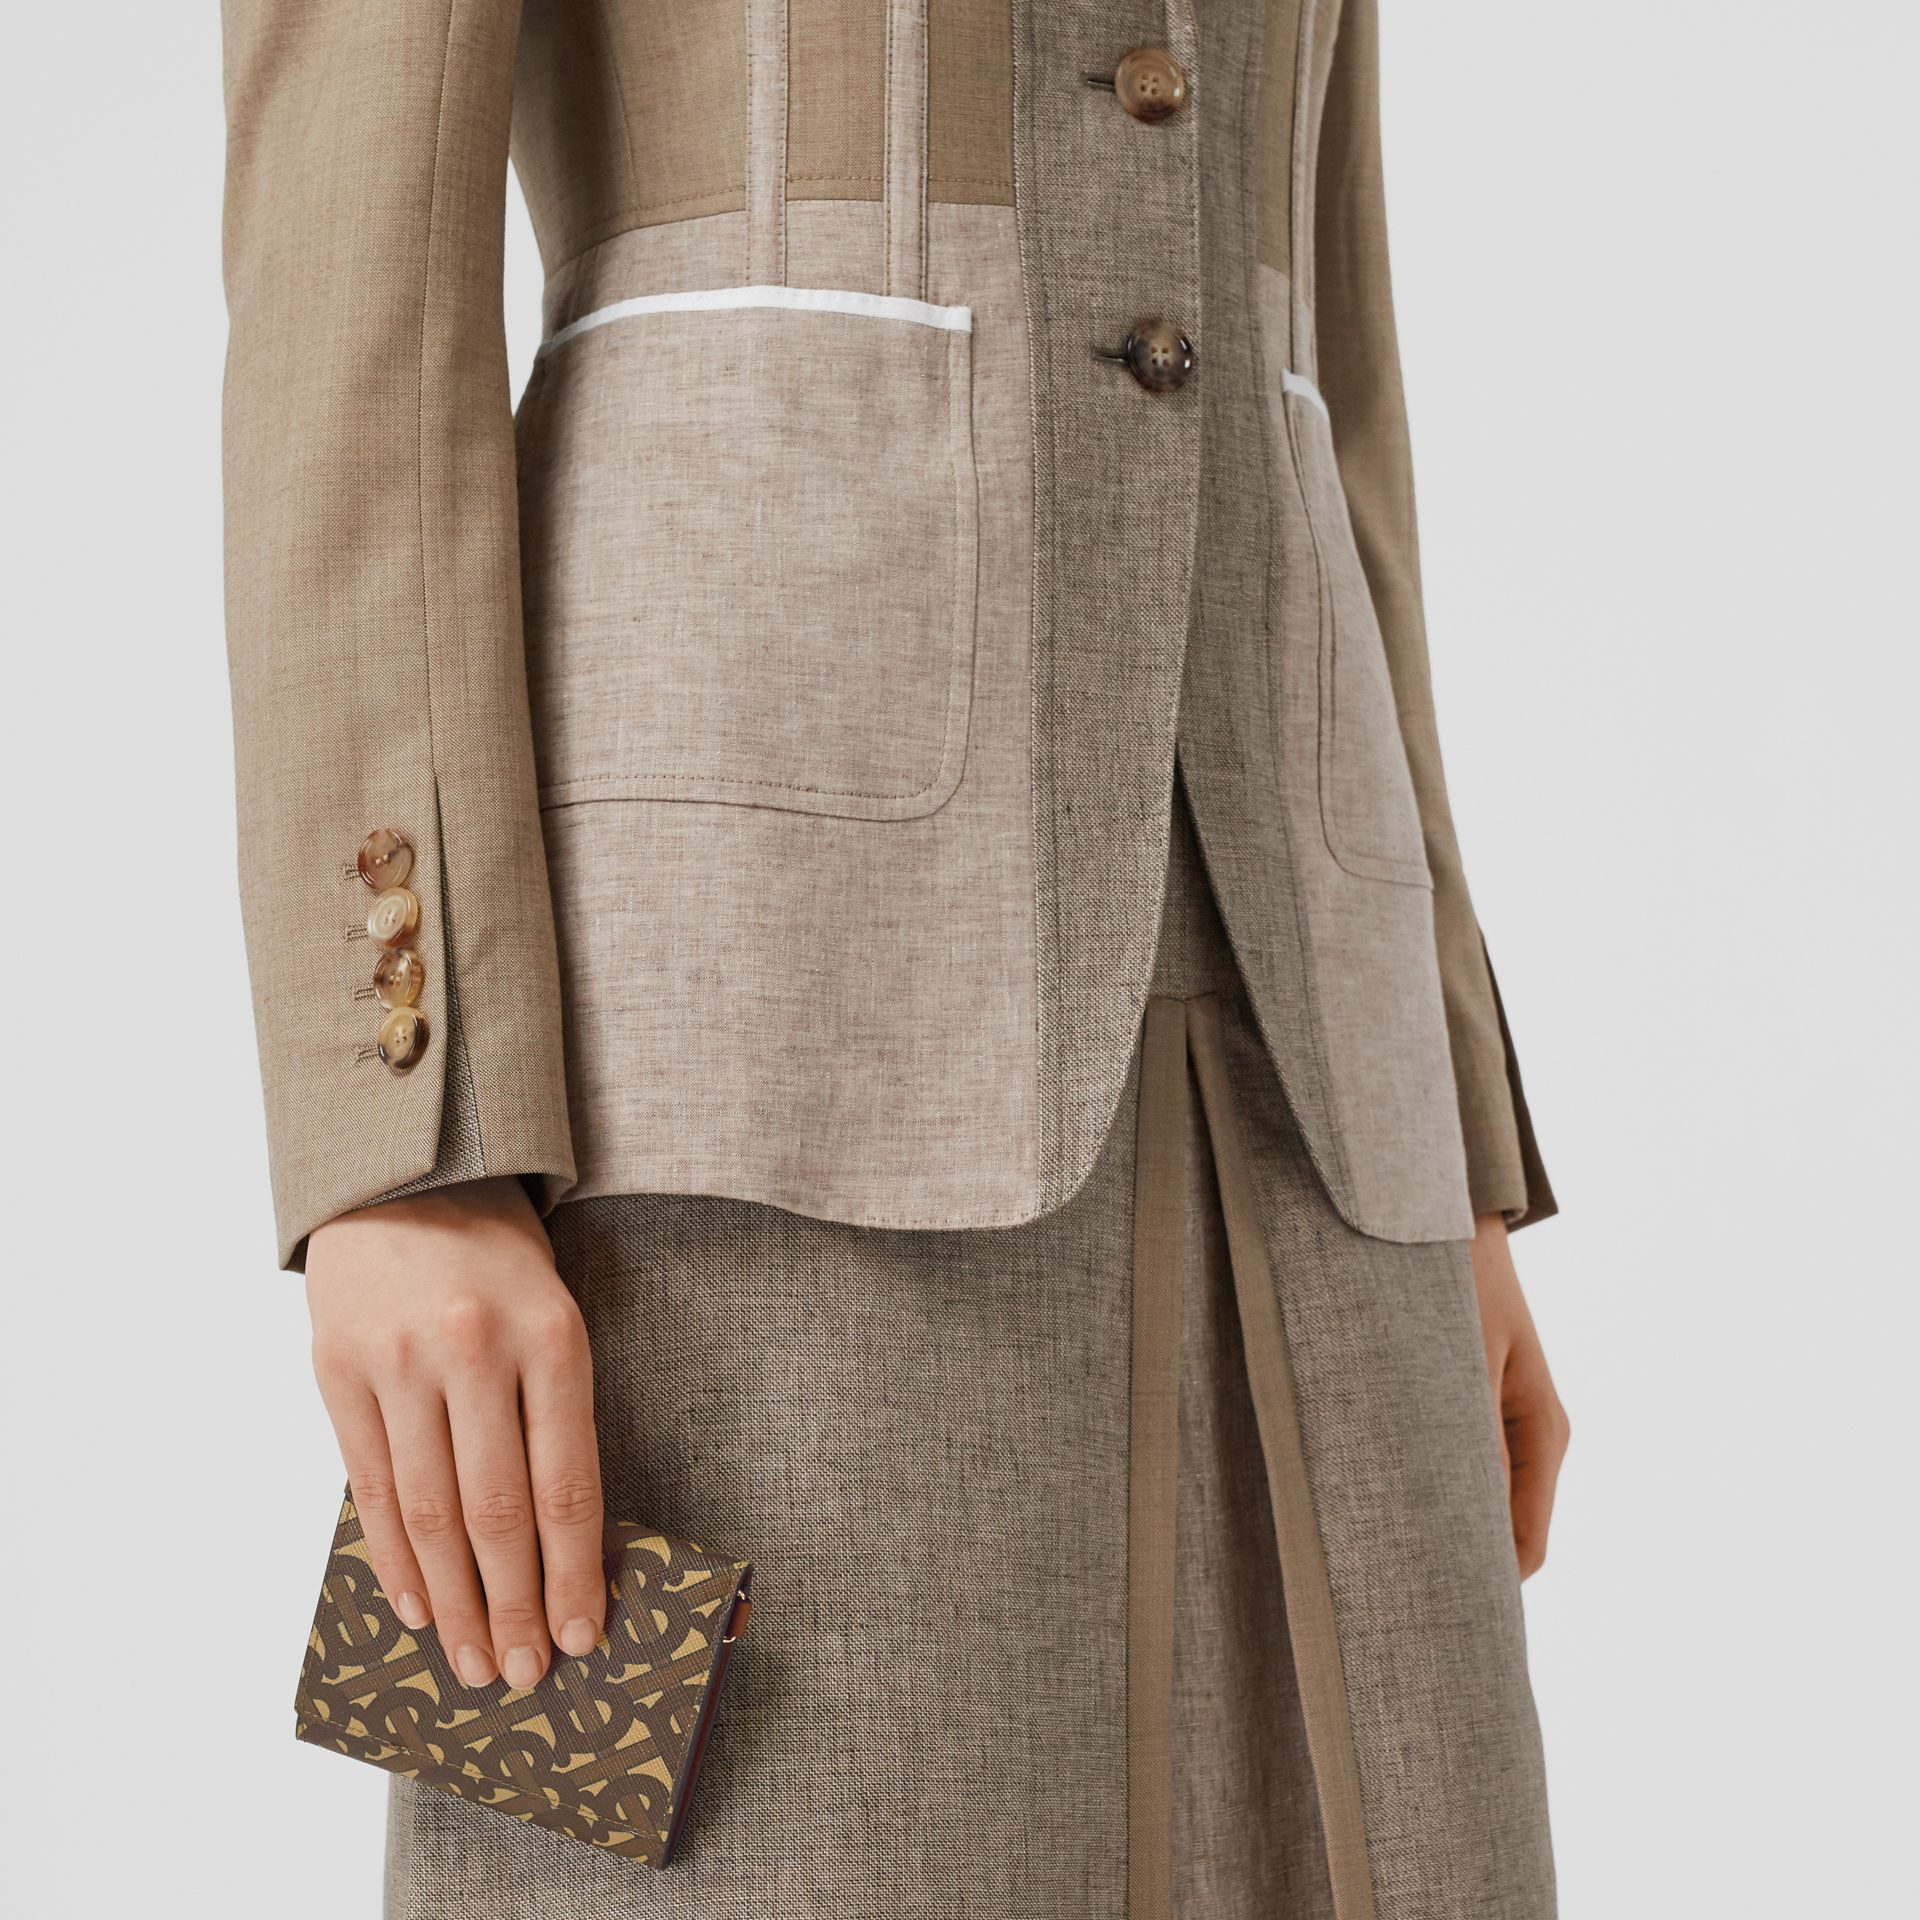 Small Monogram Print Wallet with Detachable Strap in Bridle Brown | Burberry United Kingdom - gallery image 8